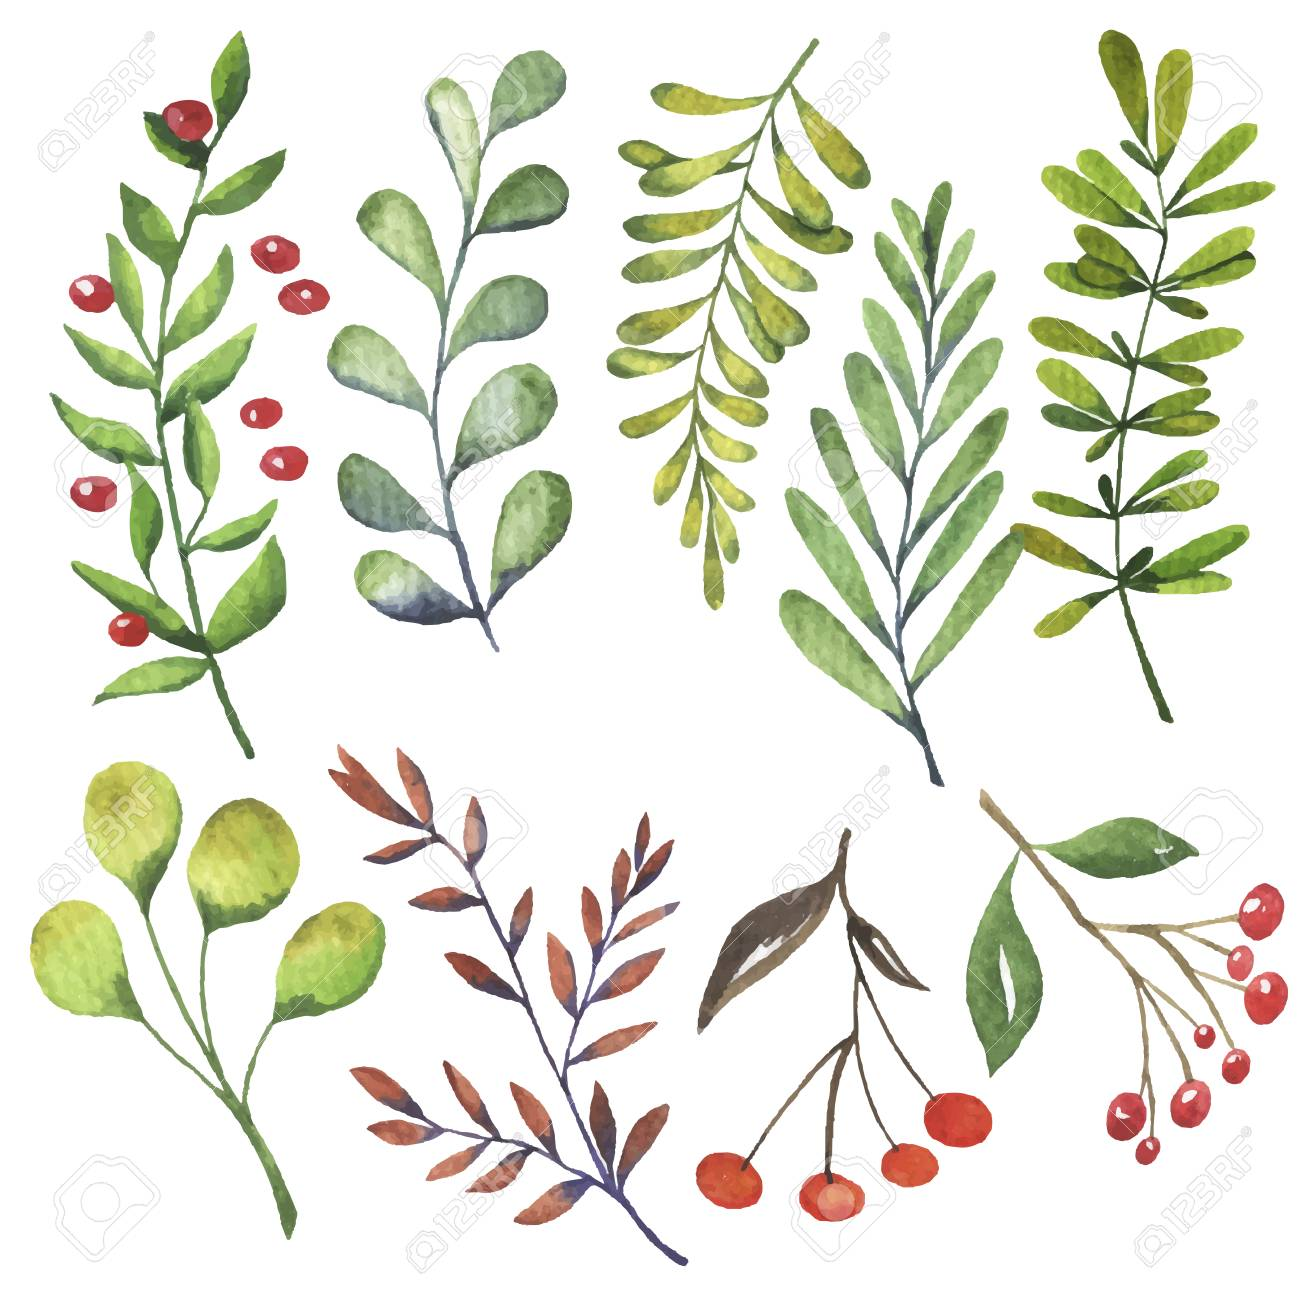 Green leaves and autumn berries set painted by watercolor. Hand drawn illustration. - 104462611